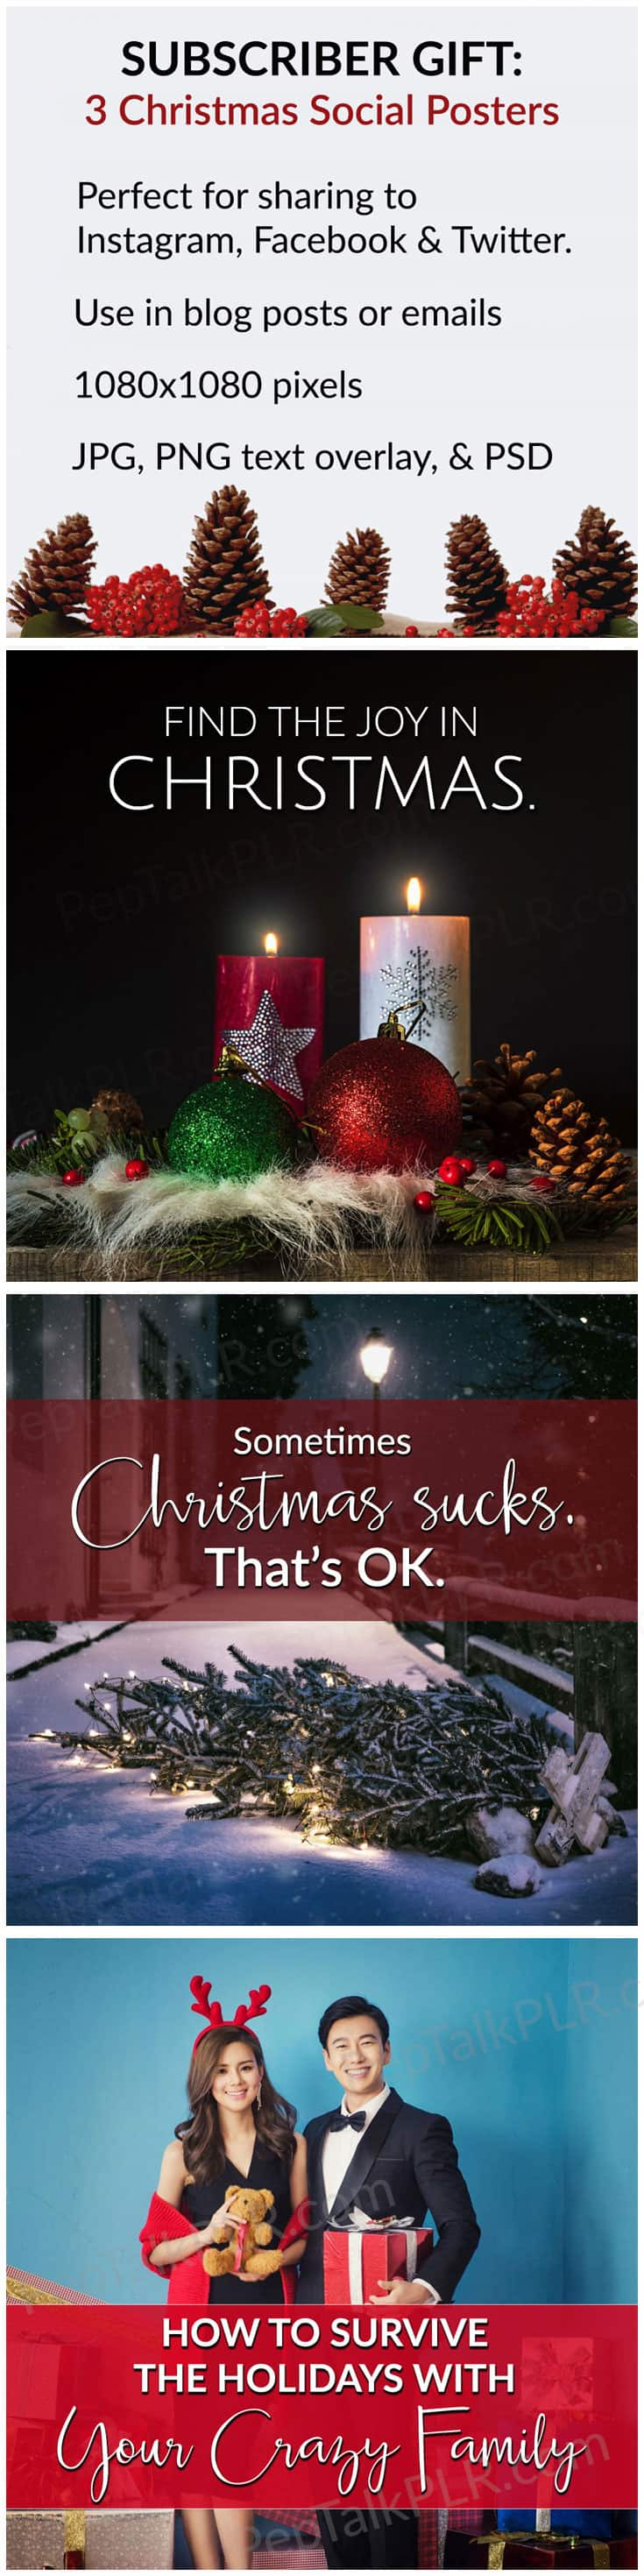 Free Christmas Social Posters - Download 3 free Christmas social posters perfect for sharing to Instagram, Facebook, and Twitter! Each image is 1080x1080 pixels and includes JPG, PNG text overlays, and editable PSD formats.